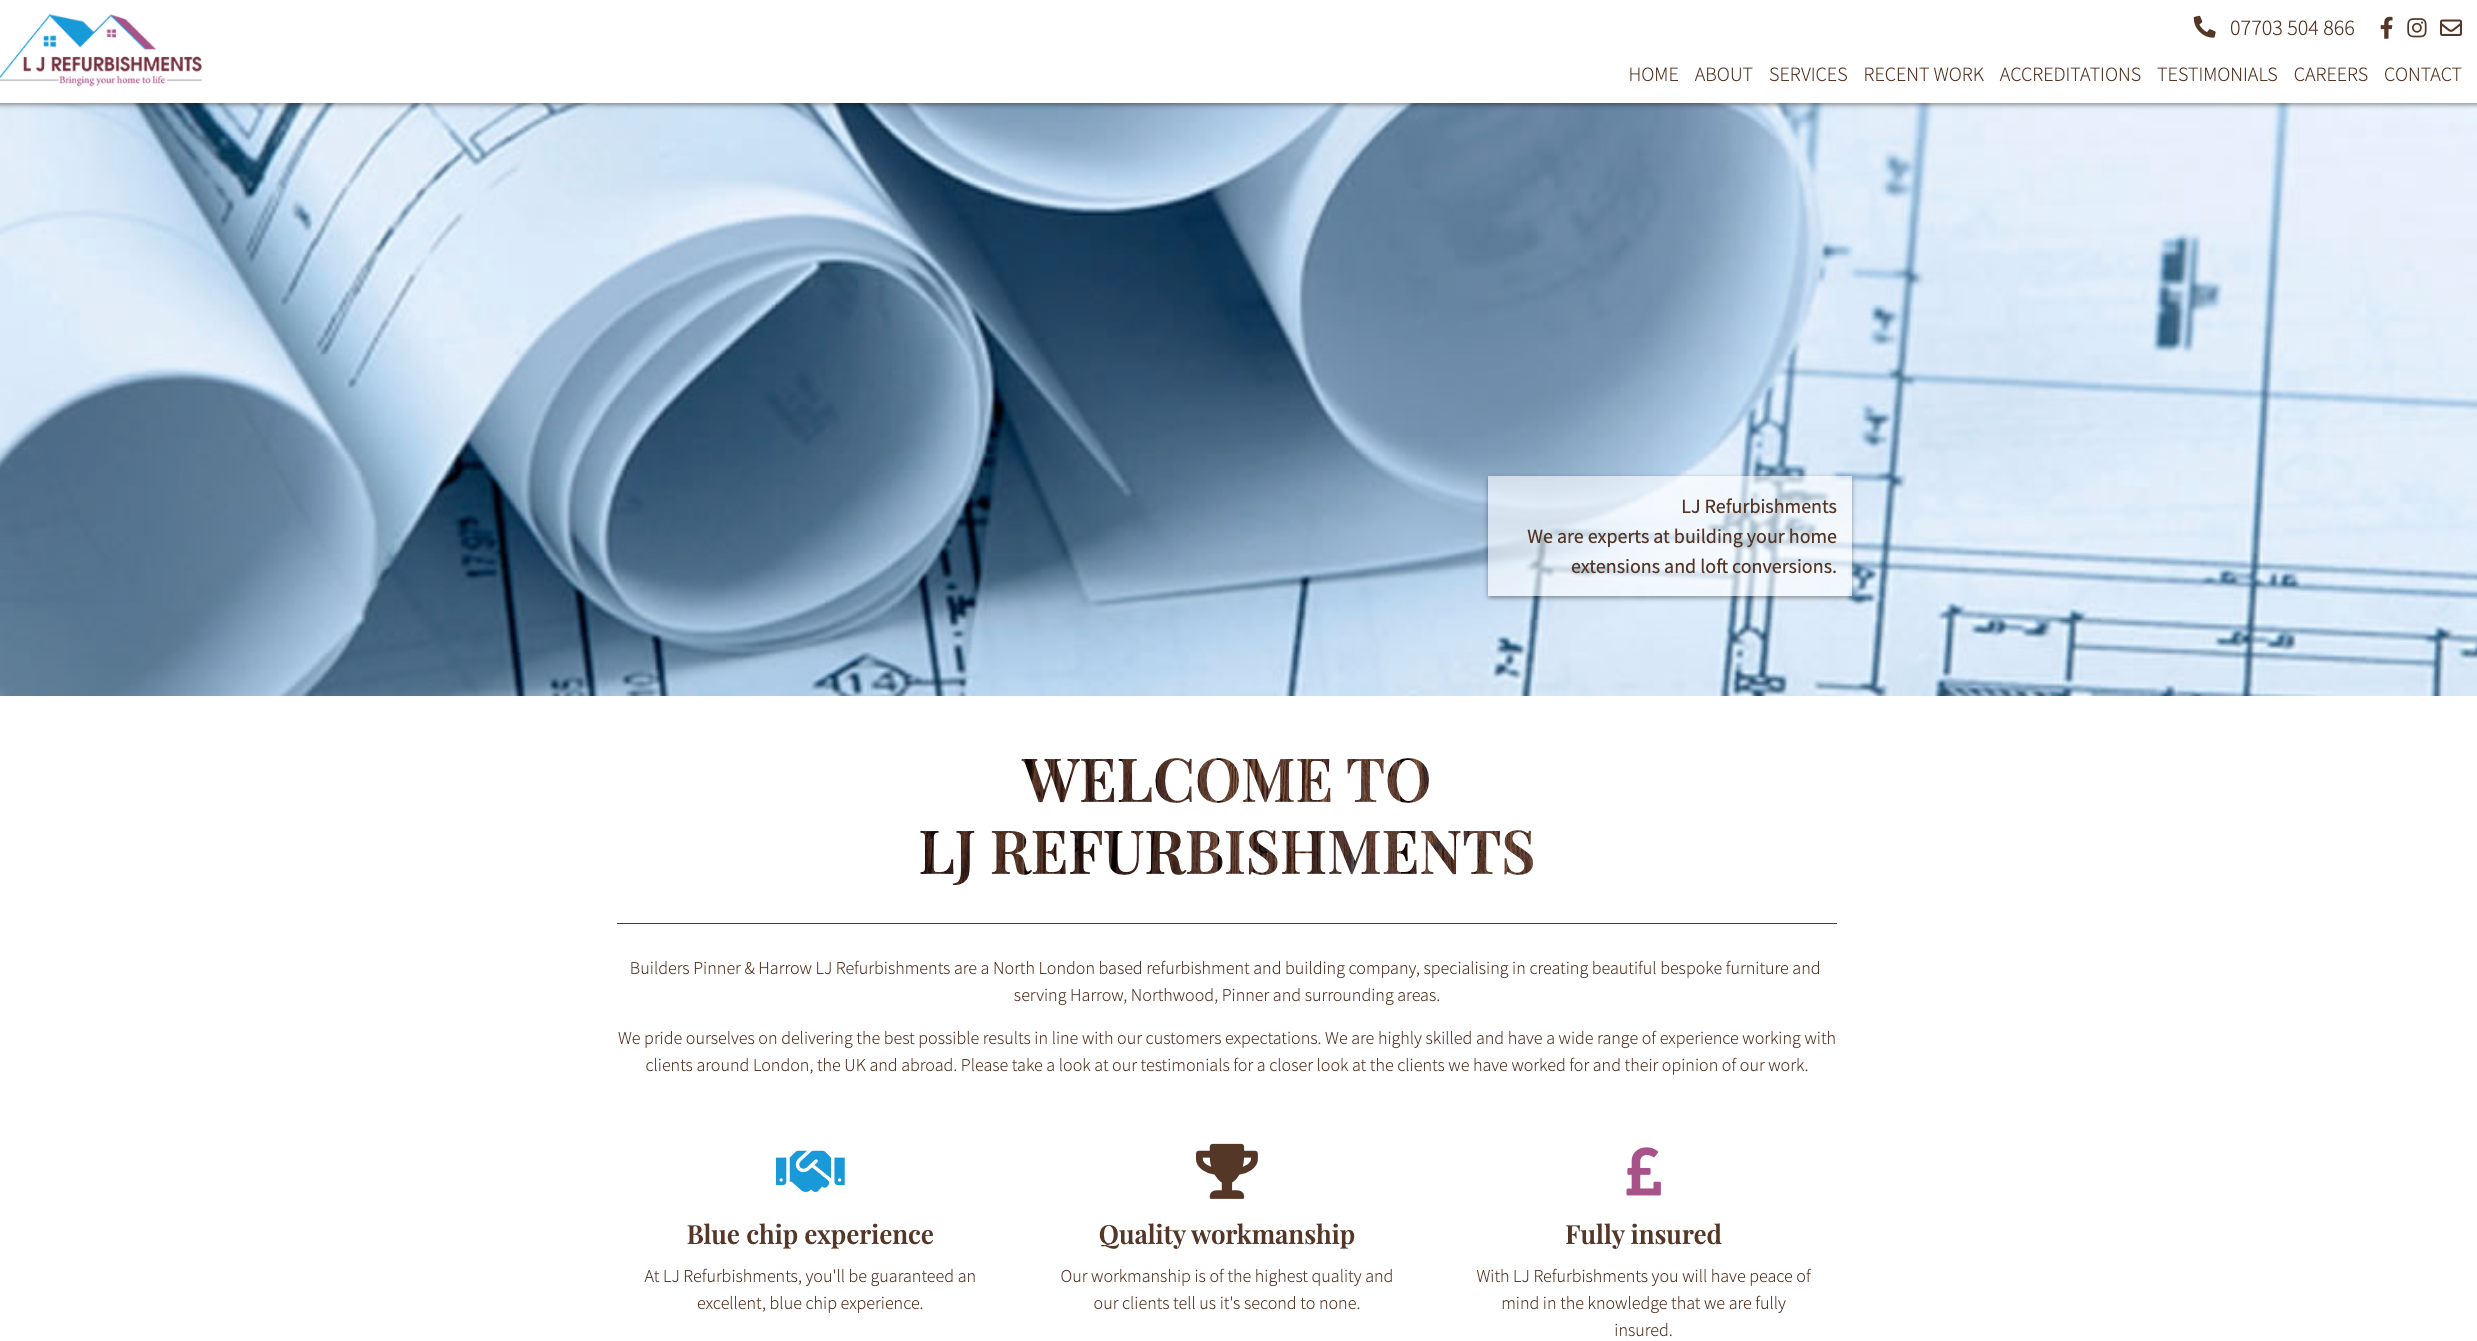 LJ Refurbishments